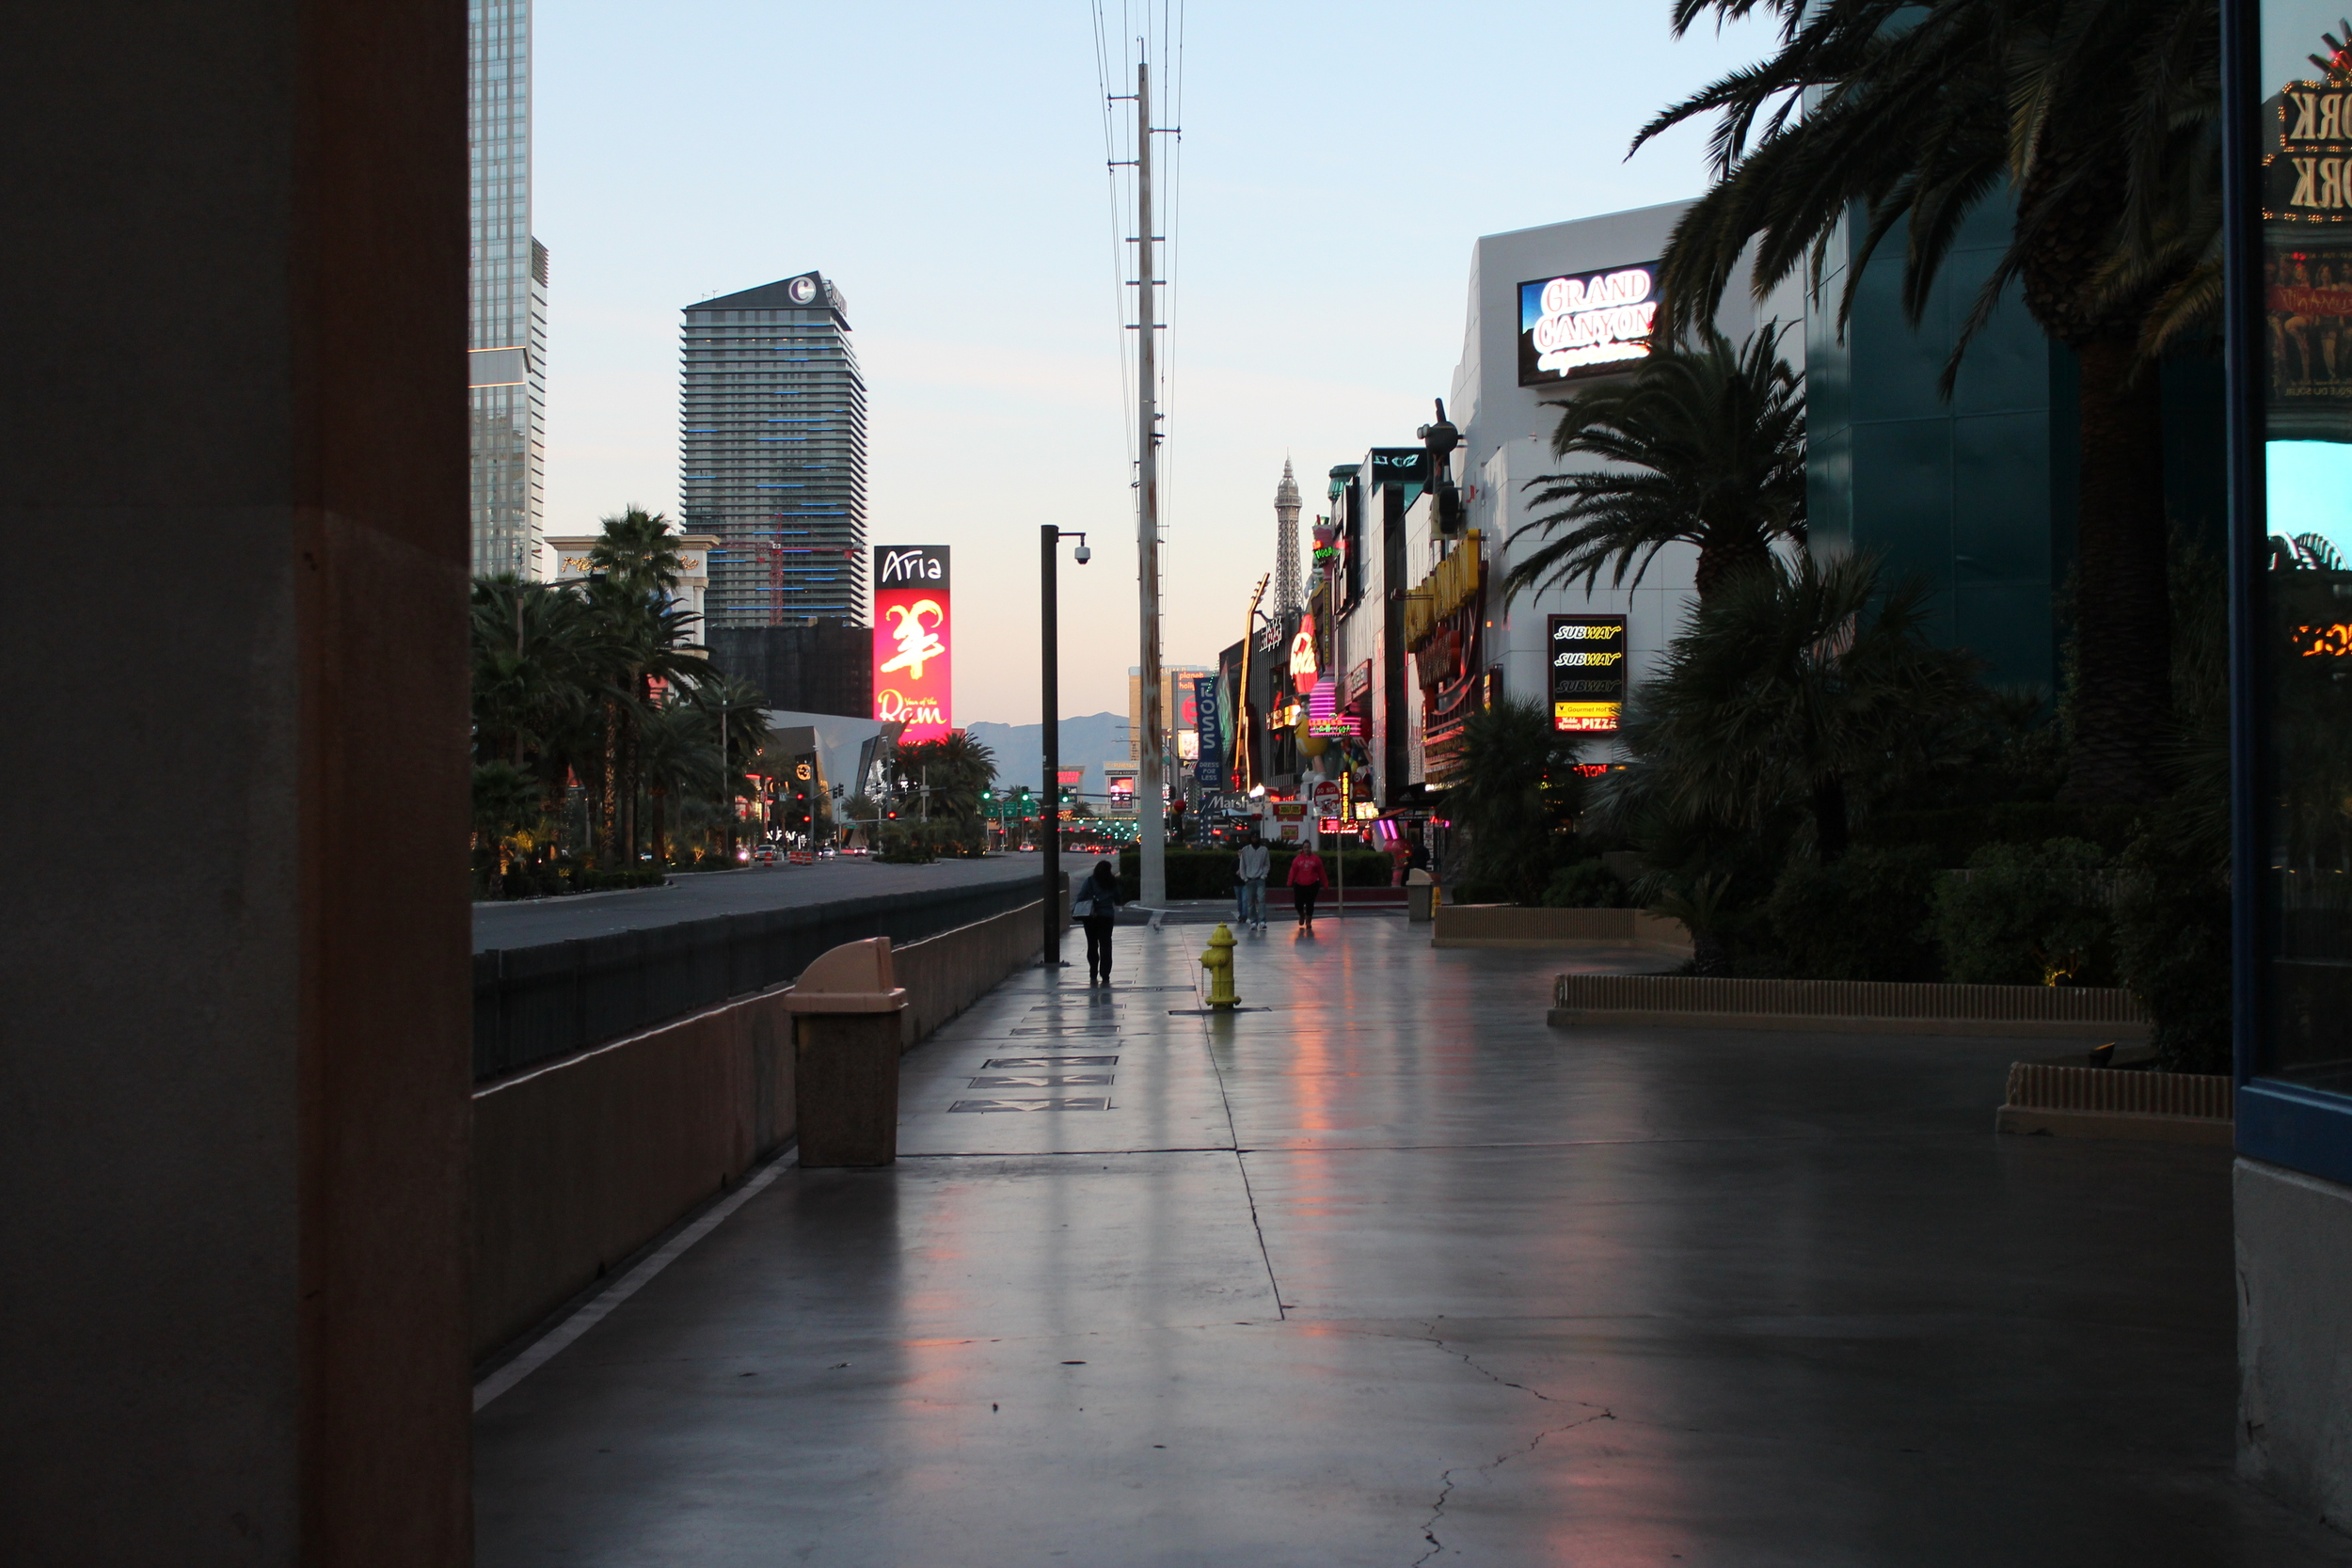 The strip at dawn. I pulled an all-nighter fueled by caffeine and video roulette.